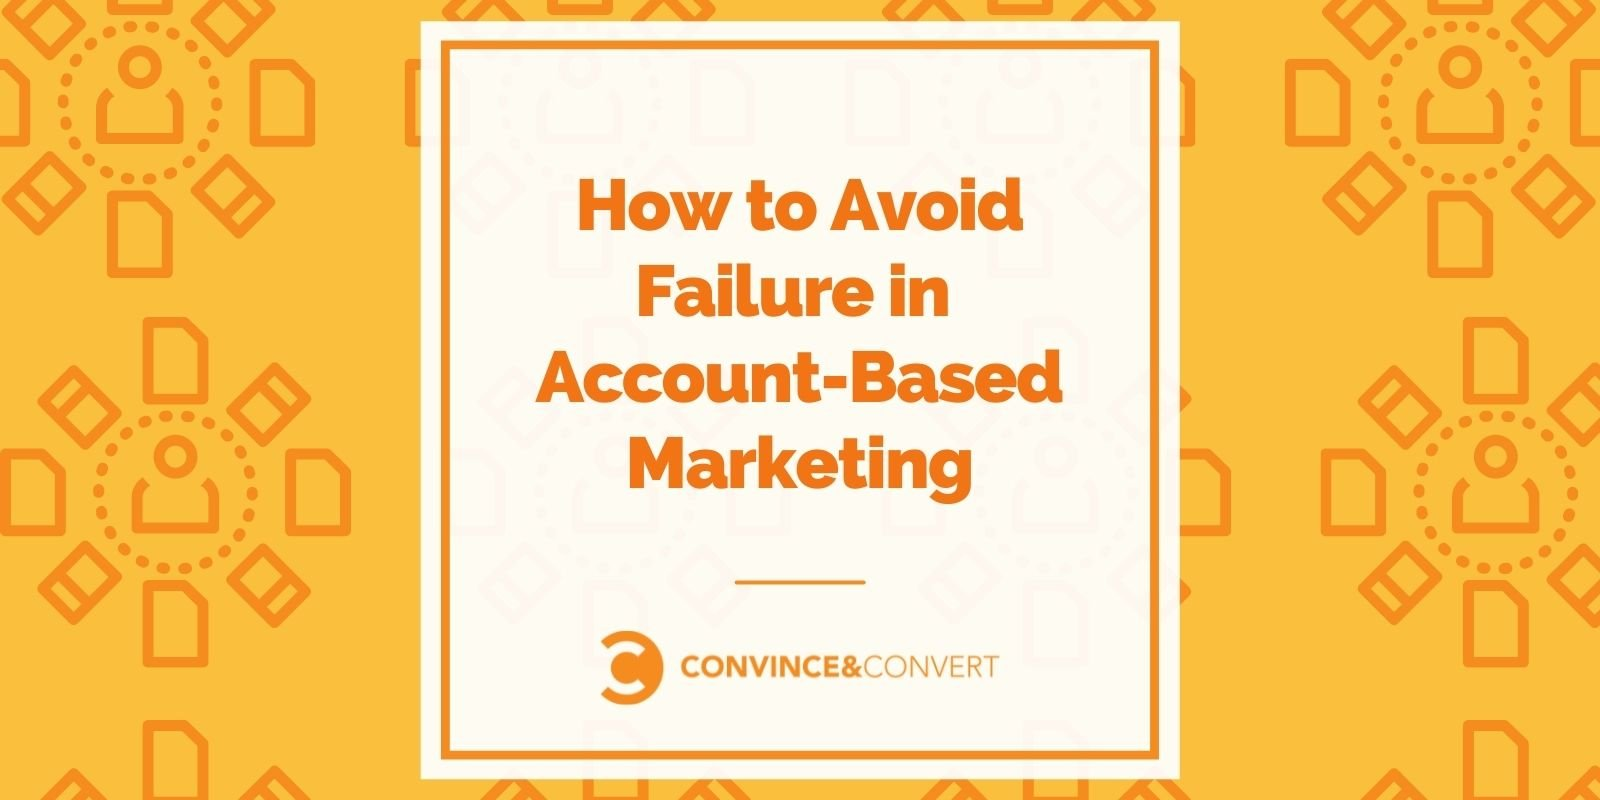 How to Avoid Failure in Account-Based Marketing